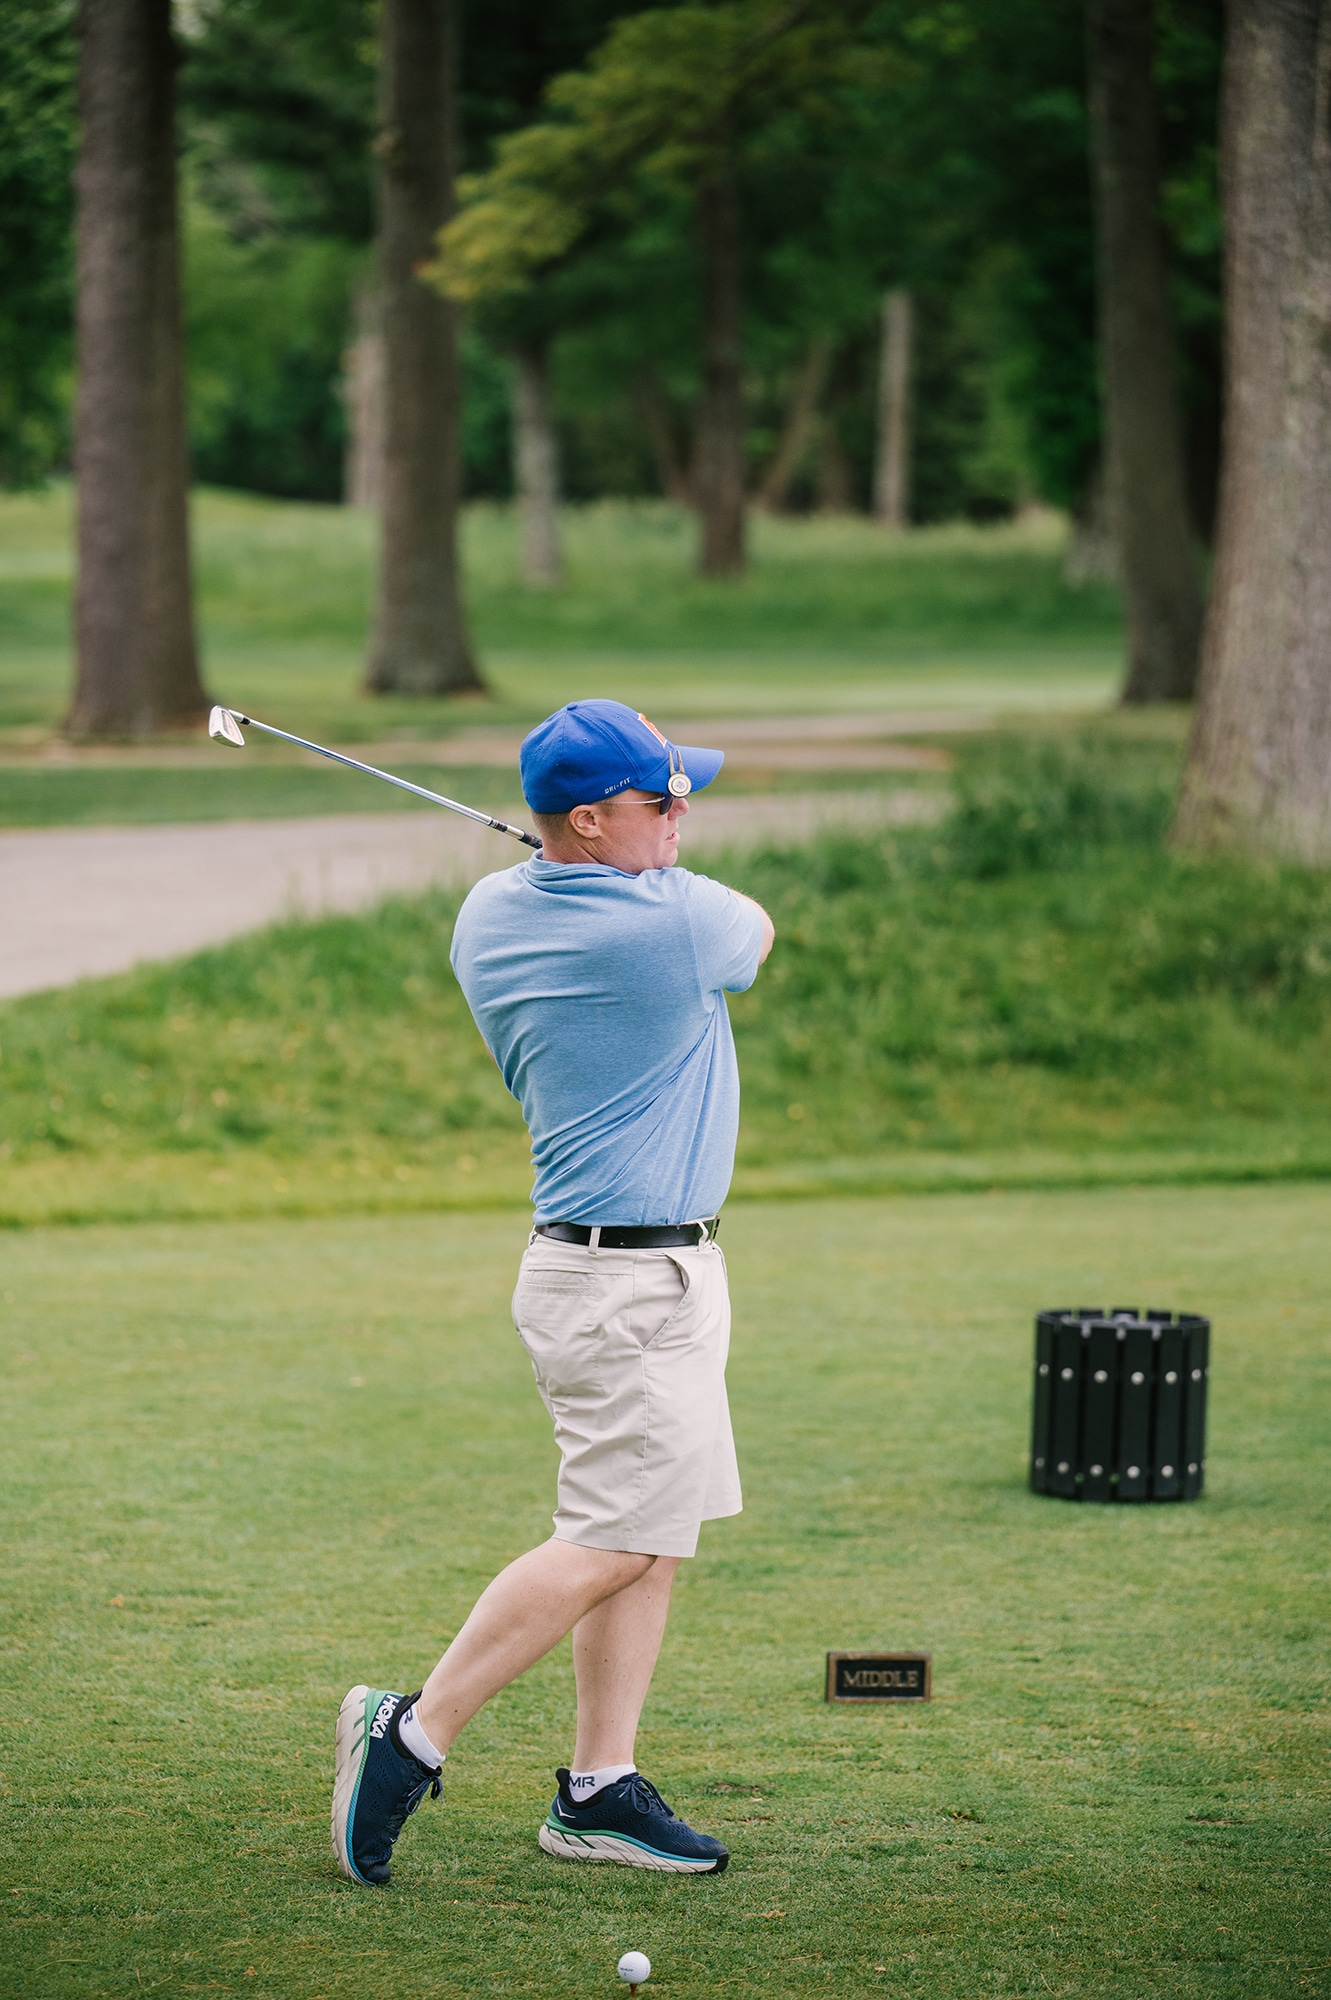 Community Options, Inc. hosted its 28th annual iMatter Spring Golf Classic, chaired by Philip Lian, at TPC Jasna Polana on Monday, May 24th, 2021.